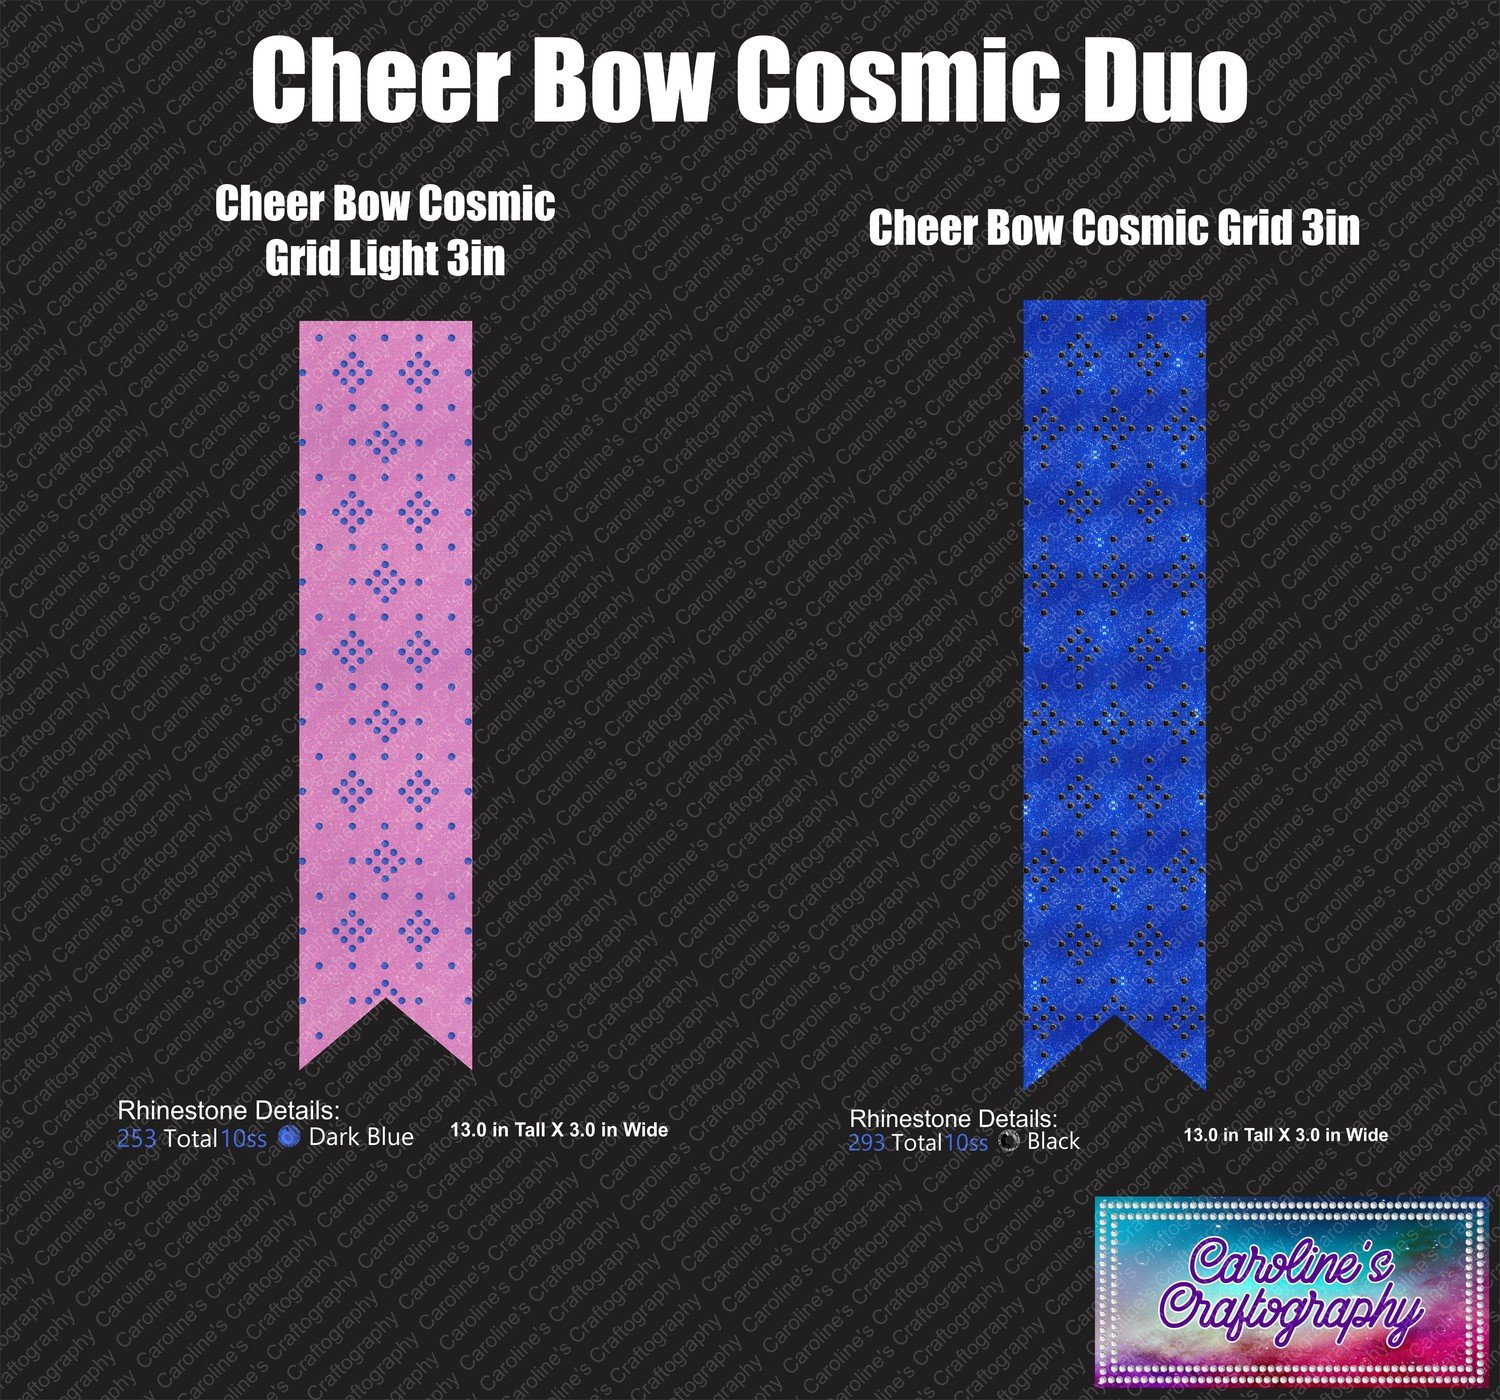 Cheer Bow Cosmic Grid Duo